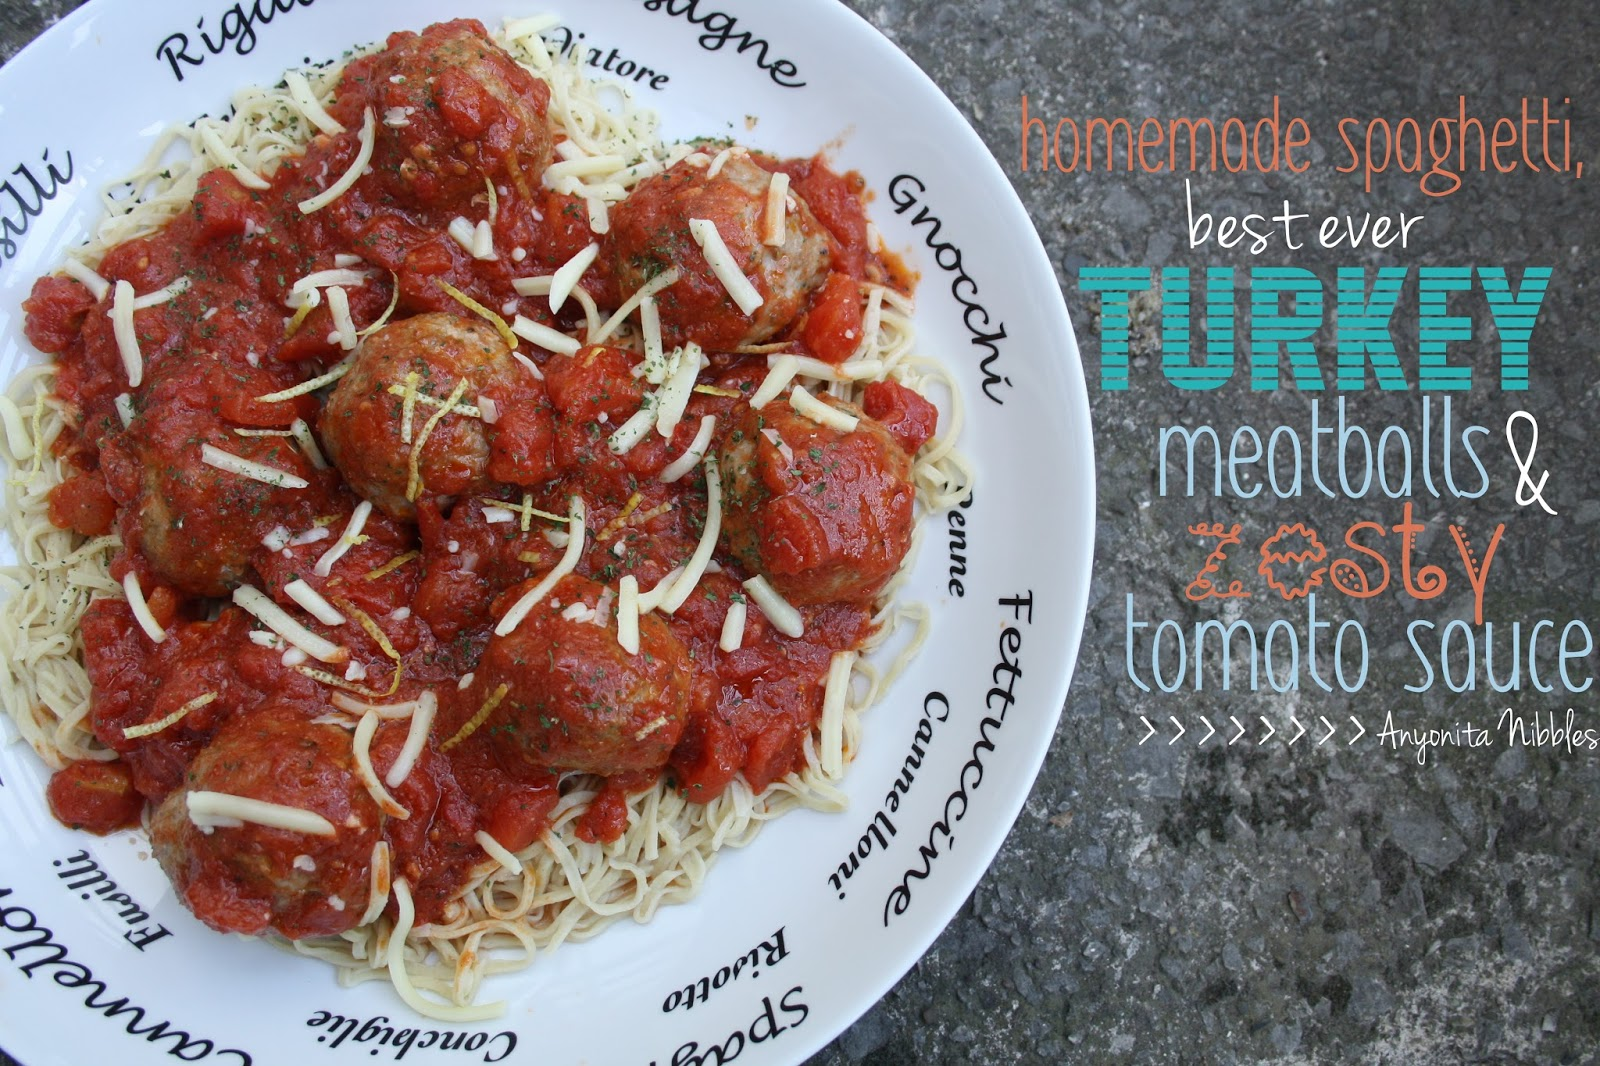 ... with Best Ever Turkey Meatballs and Tomato Sauce from Anyonita Nibbles